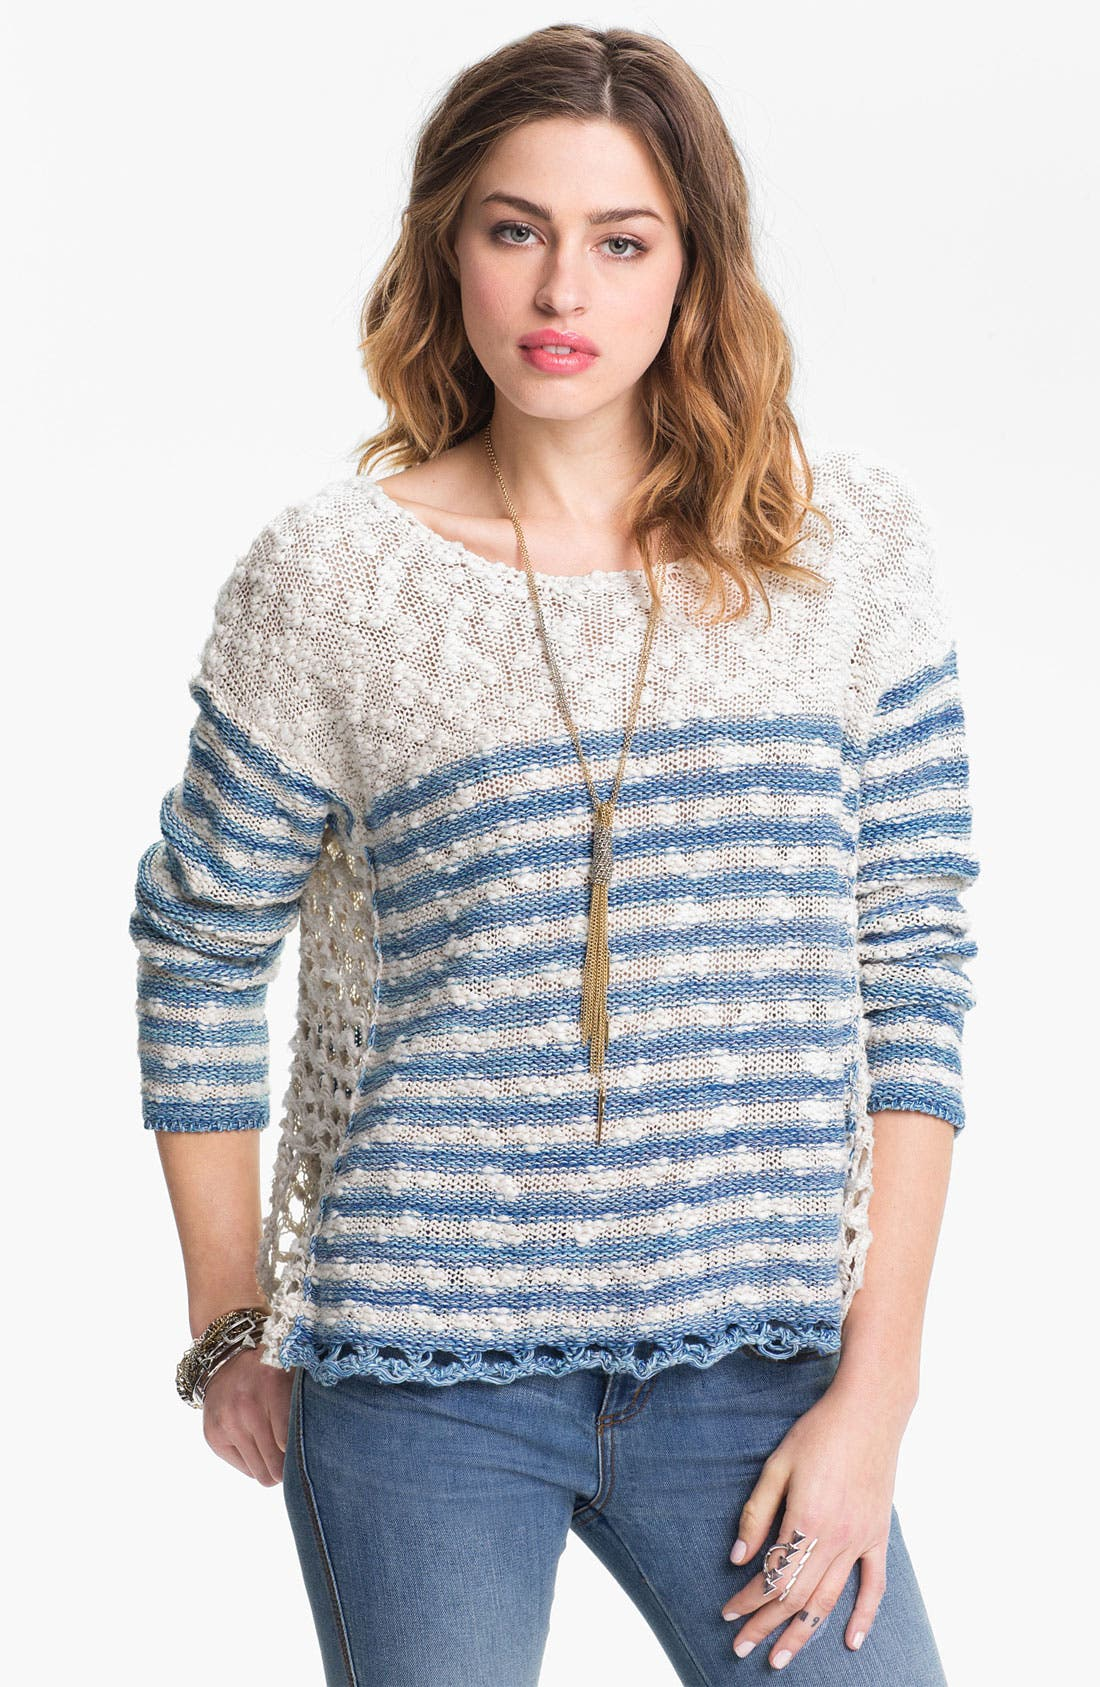 Main Image - Free People 'French Creek' Slub Cotton Sweater